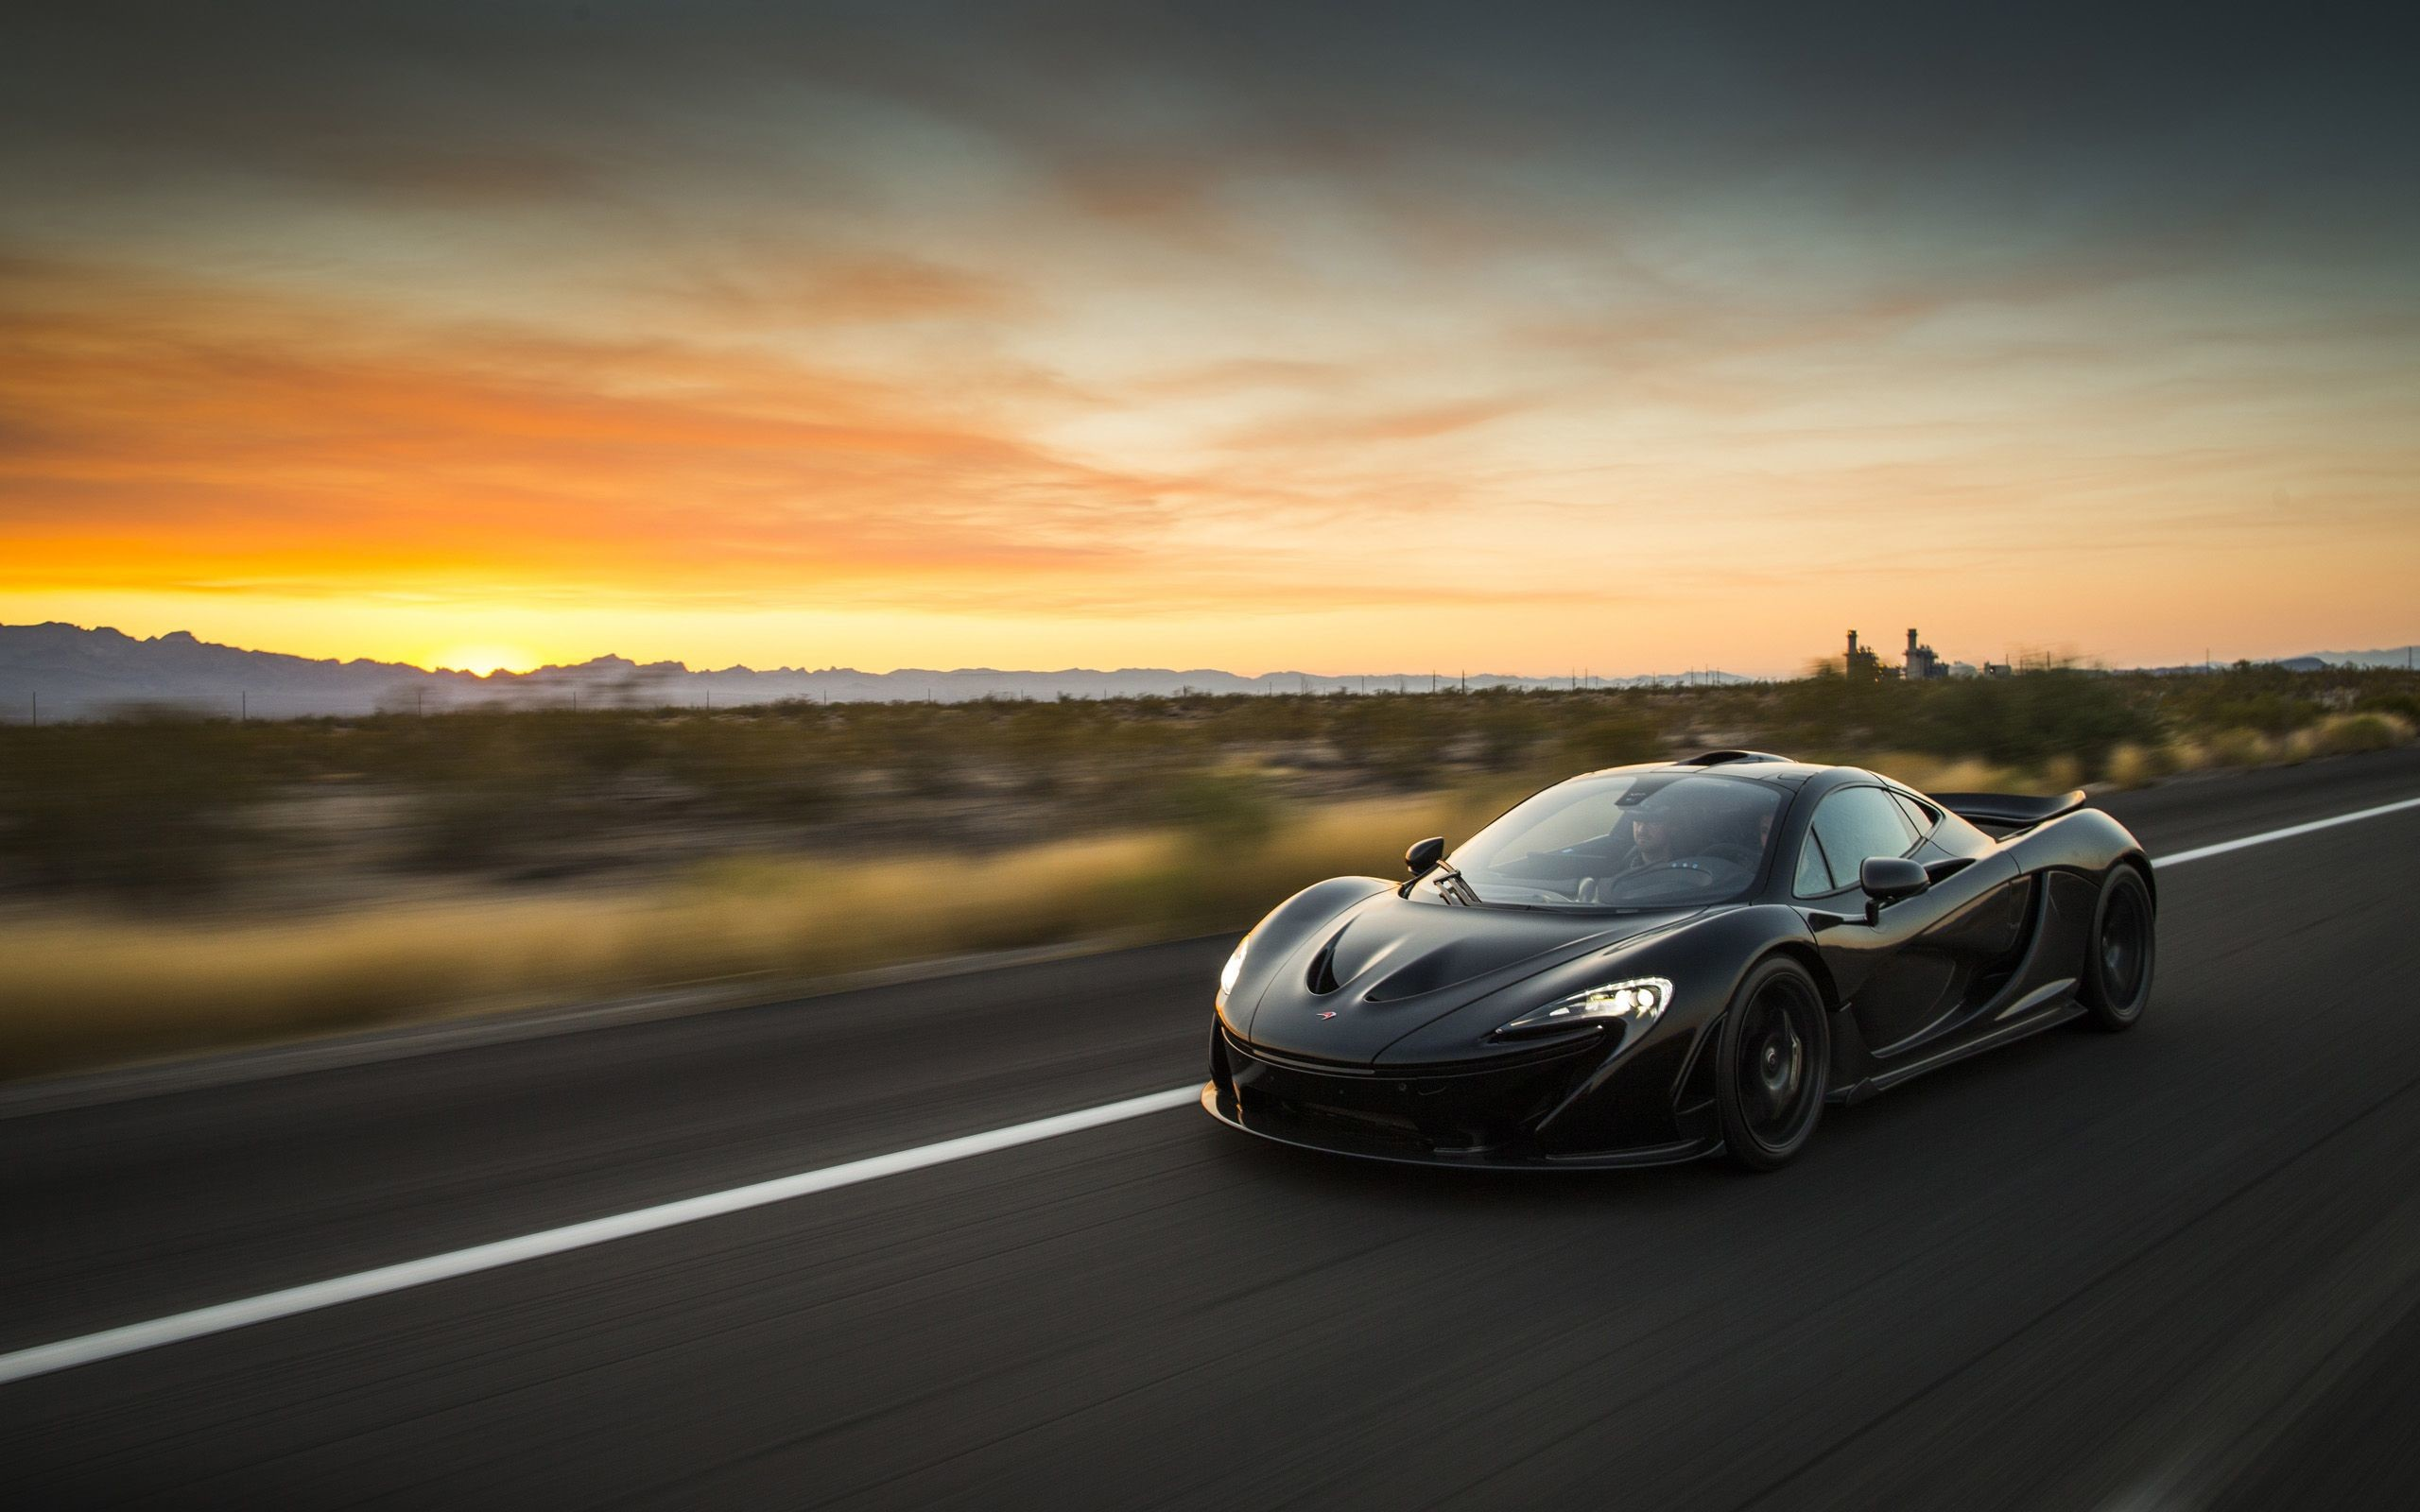 Supercars HD Wallpapers 1080p (76+ images)